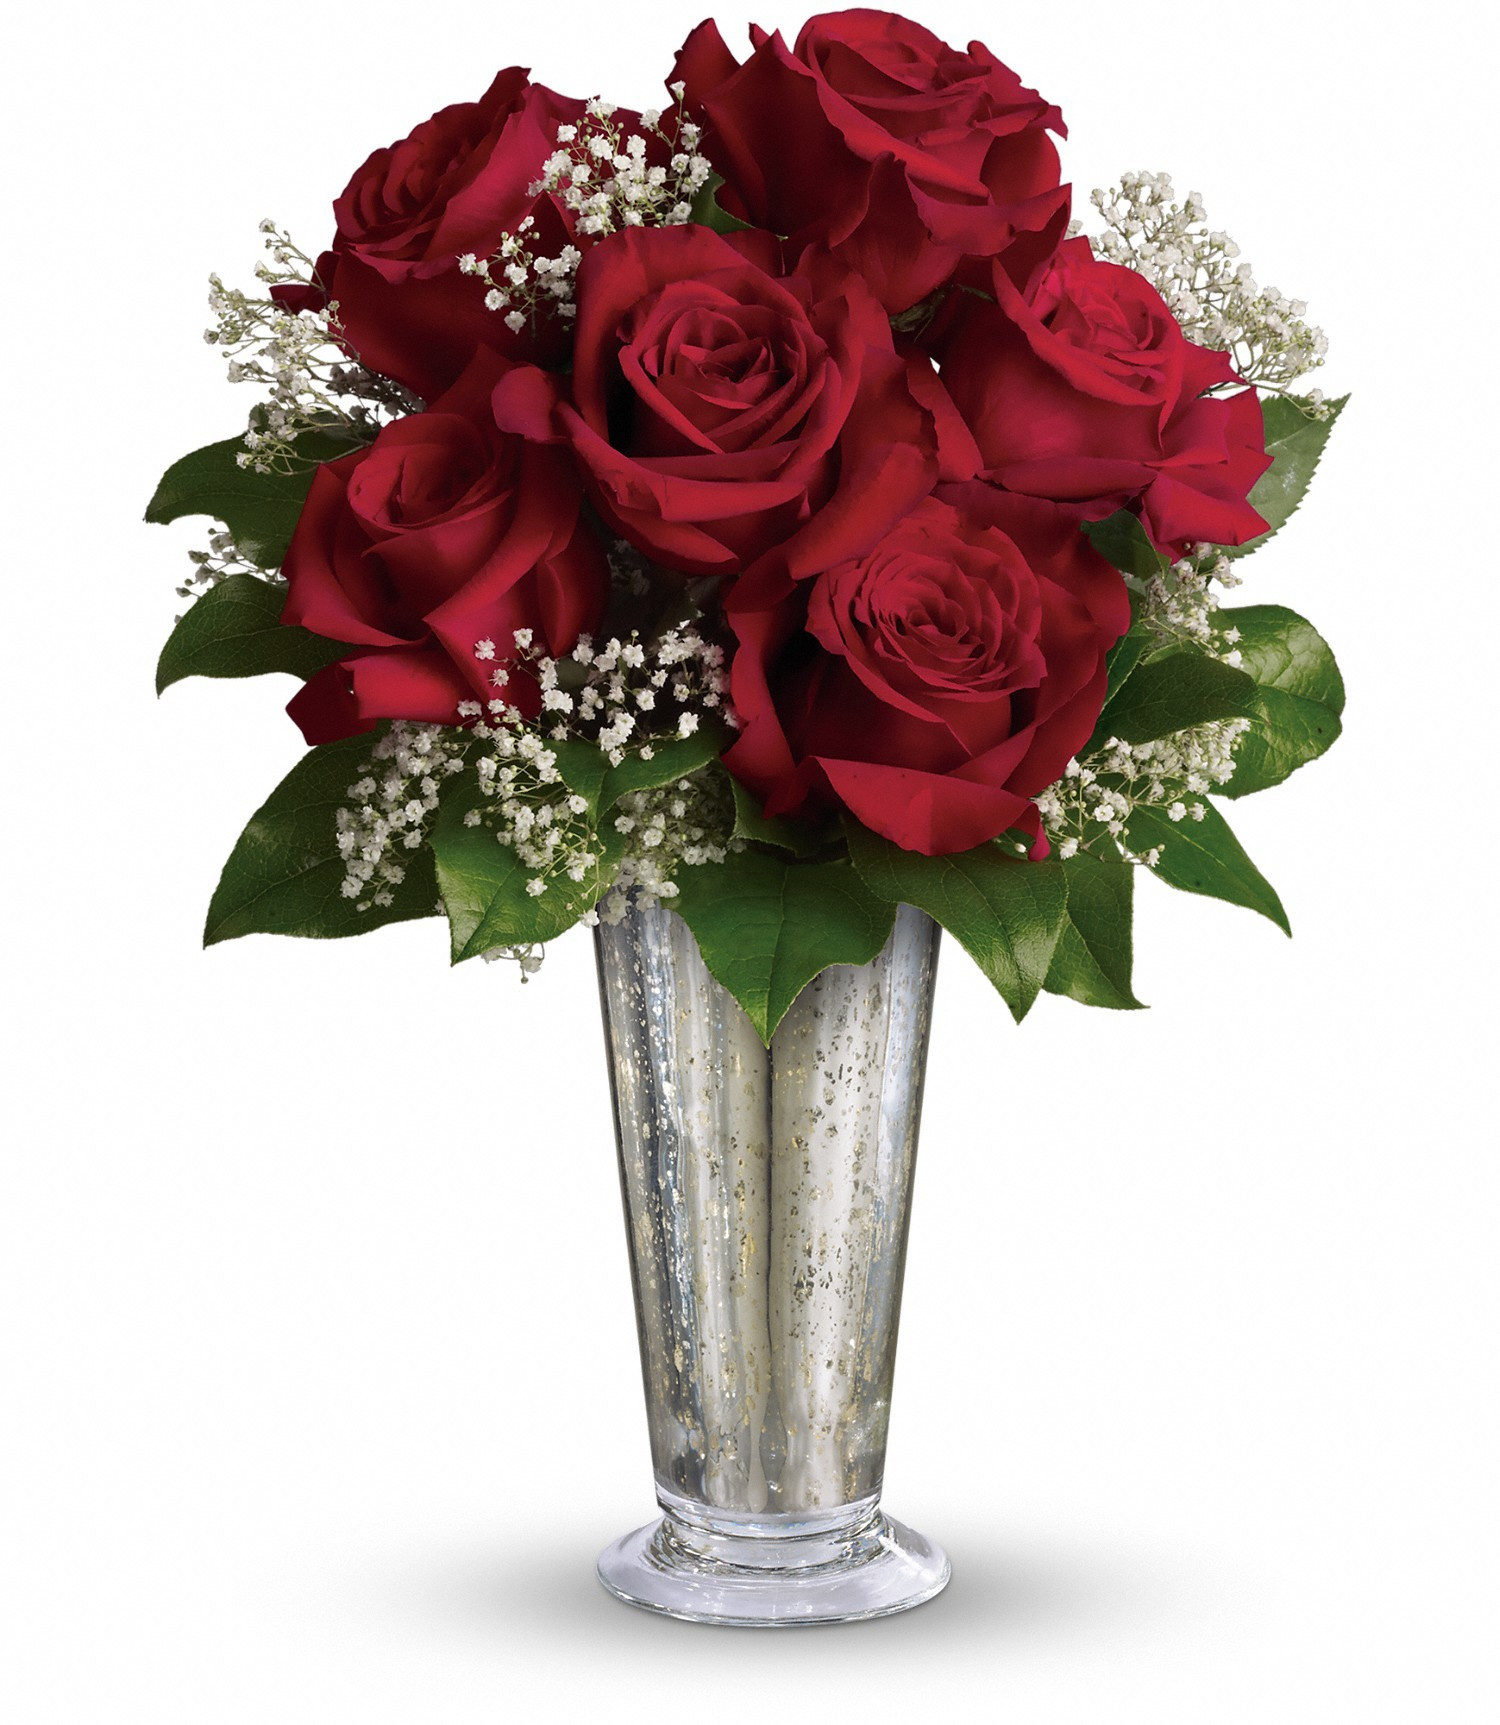 cherokee wedding vase for sale of statesboro florist flower delivery by fraziers flowers and gifts pertaining to telefloras kiss of the rose